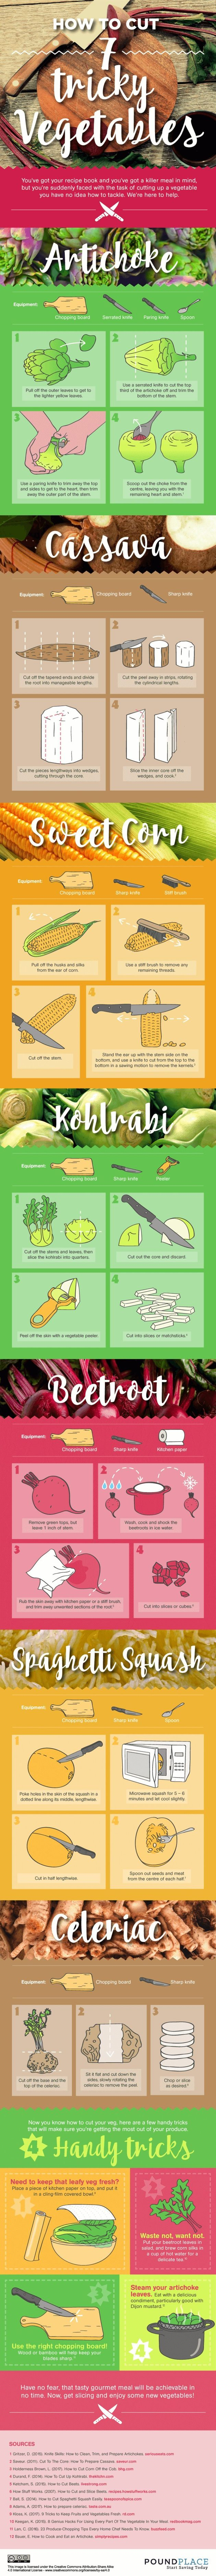 Here's How To Cut And Prep 7 Tricky